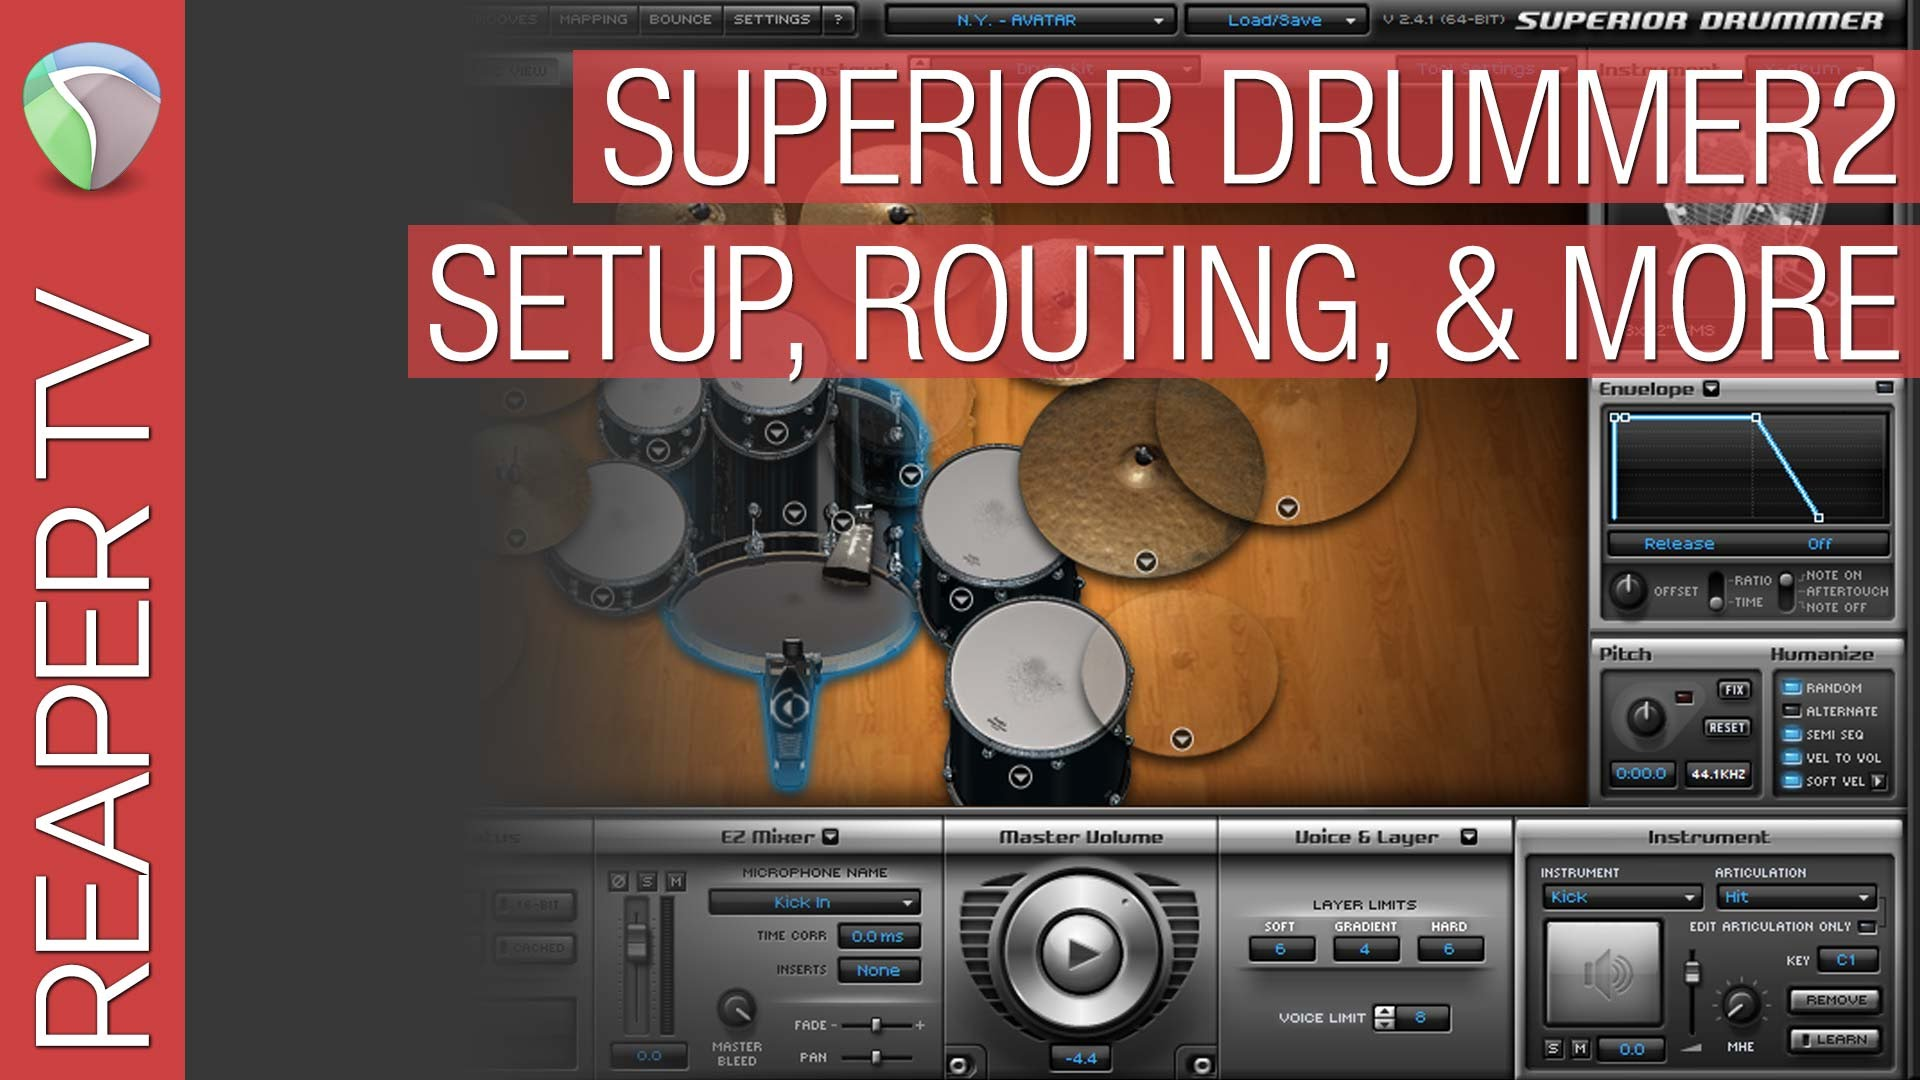 Configuring & Using Toontrack Superior Drummer 2 with Reaper 5